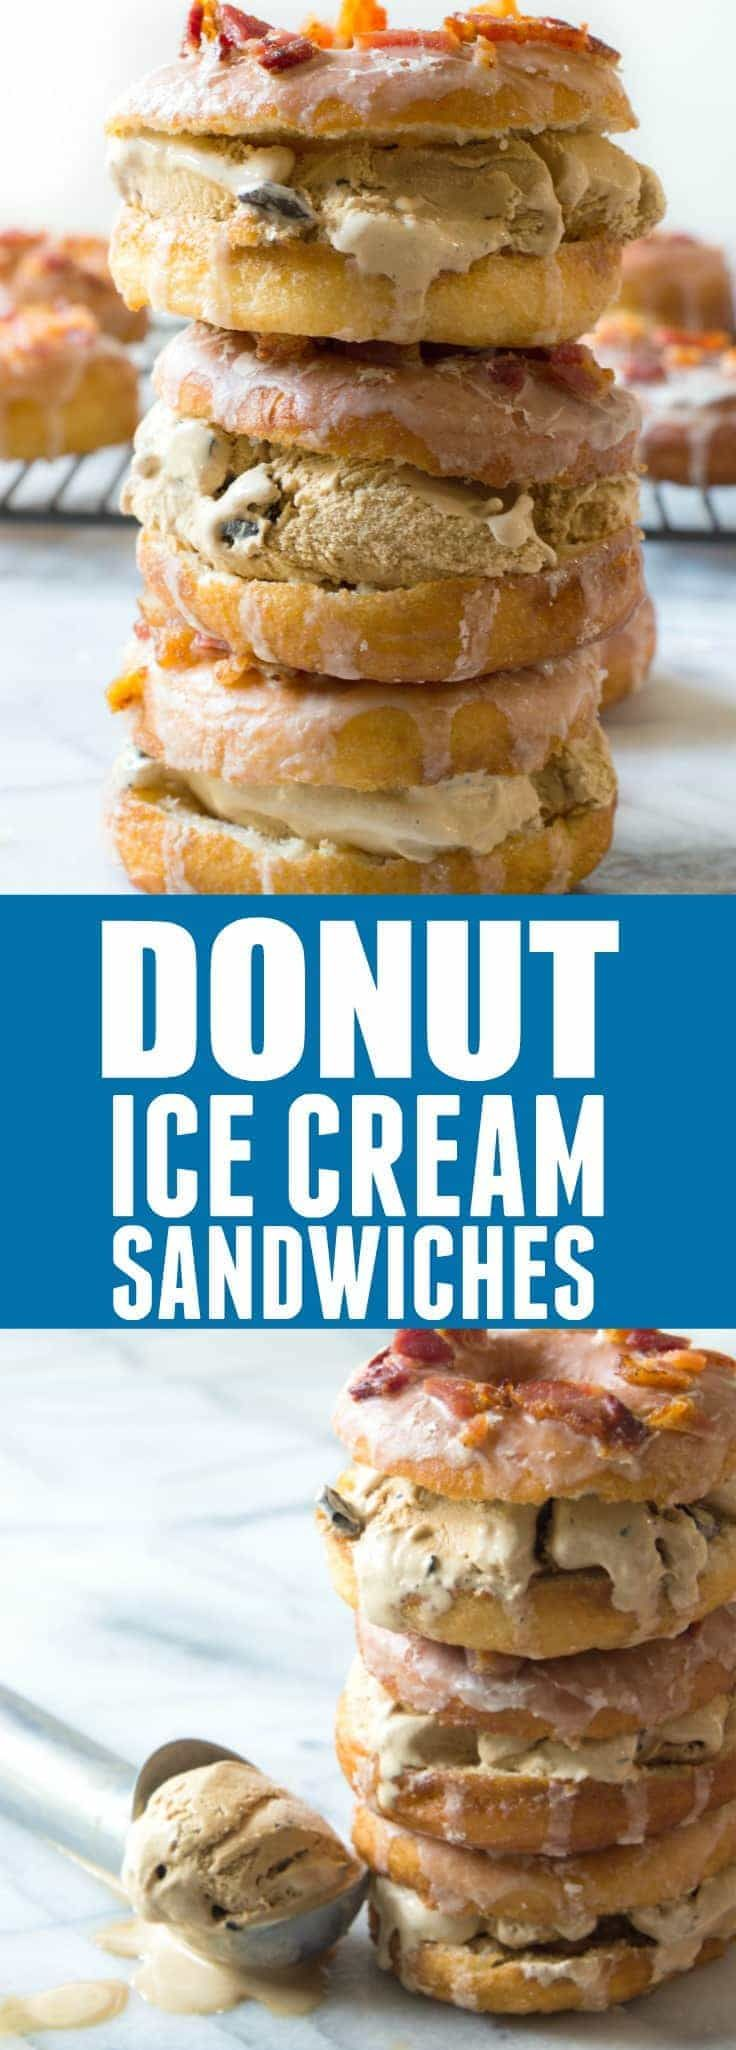 Donut Ice Cream Sandwiches! These easy to make yeast donuts are light and fluffy just like the bakery version and come together fairly quickly! Dress it up with some coffee glaze, bacon crumbles and fill with some coffee flavored ice cream for the ultimate treat. I am an official ambassador for Tom Thumb who provided me...Read More